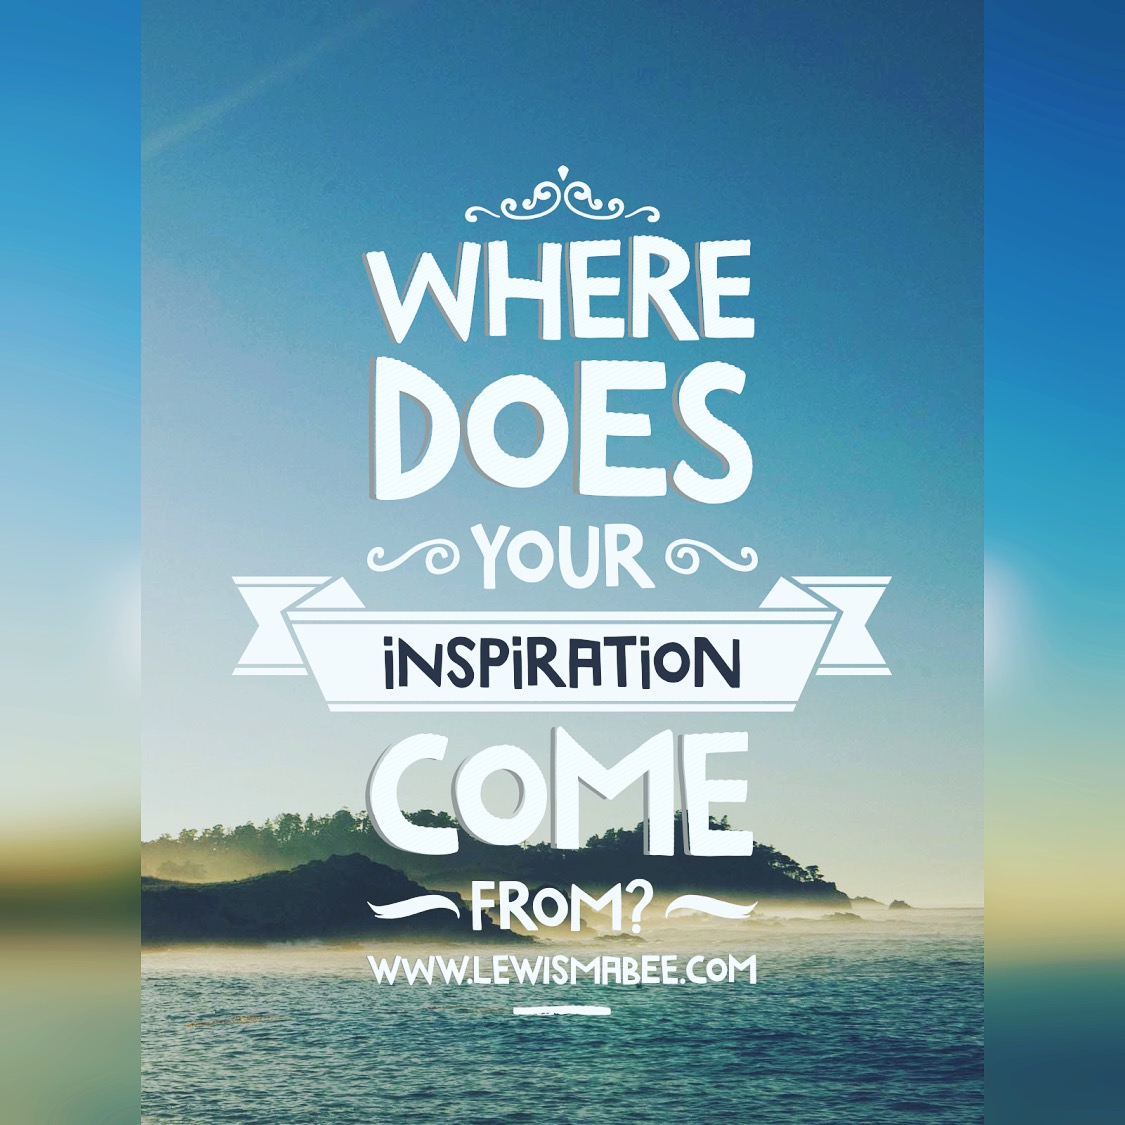 Quotes & Inspirations - Lewis Mabee Online